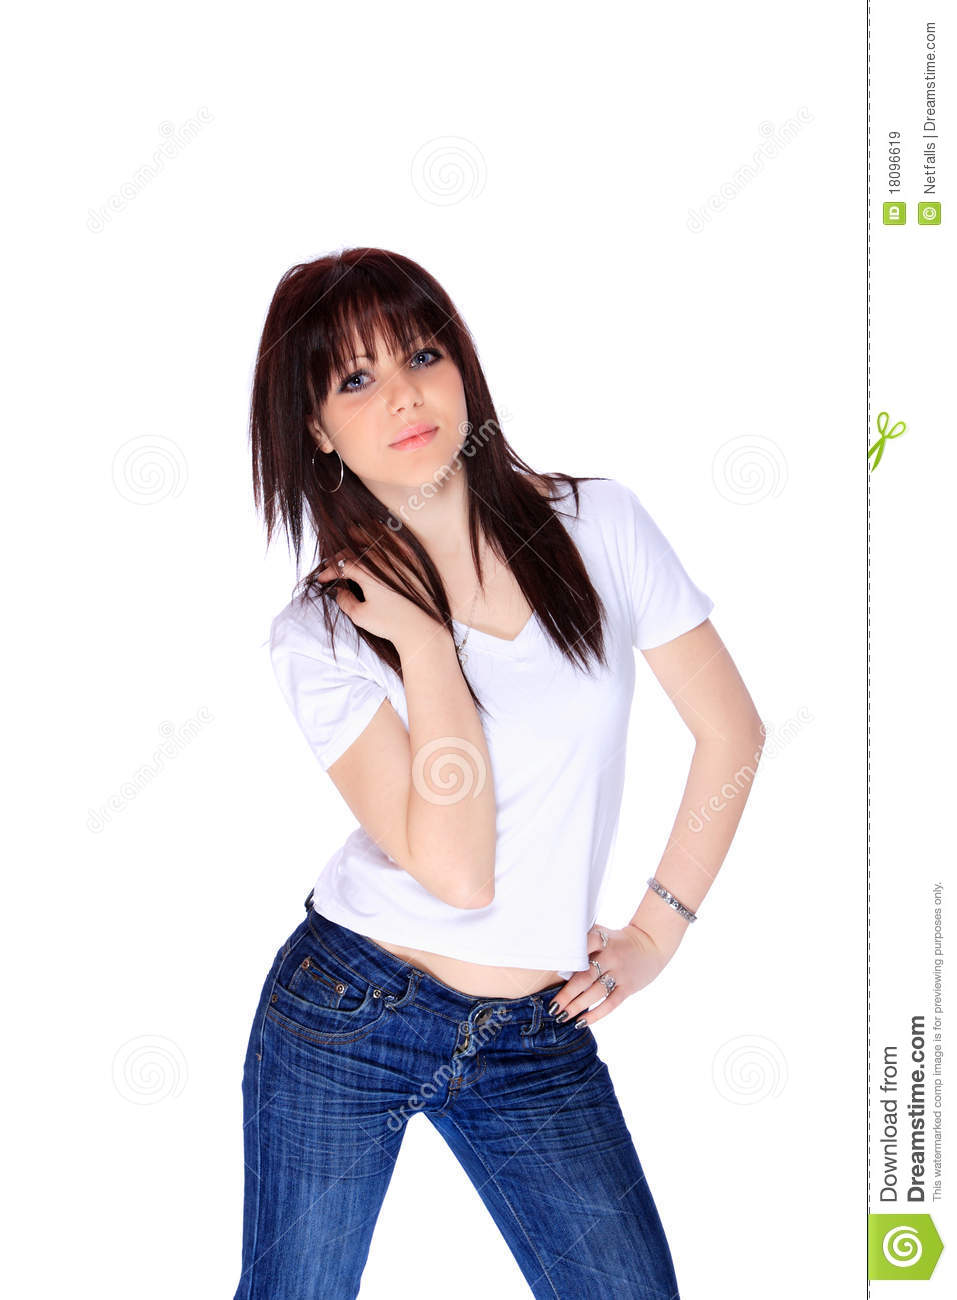 Young Woman In Jeans And T Shirt Royalty Free Stock Images - Image 18096619